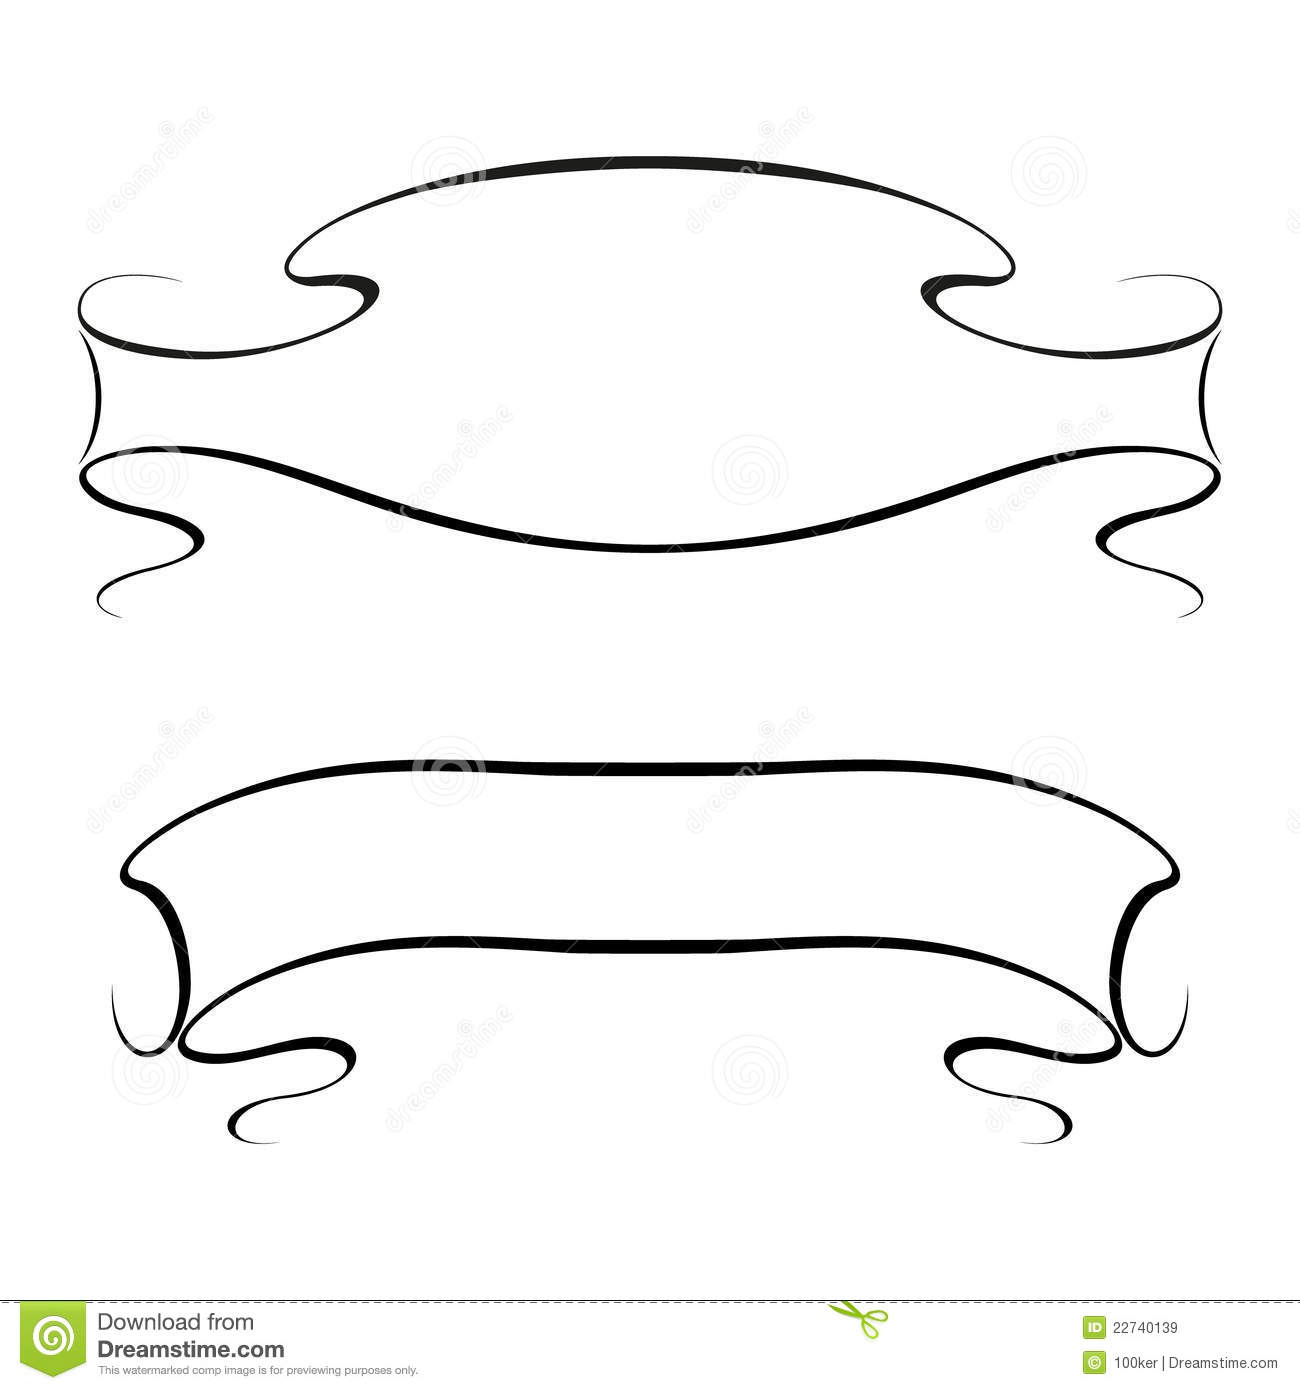 15 Simple Ribbon Vector Images - Ribbon Banner Vector Free ...